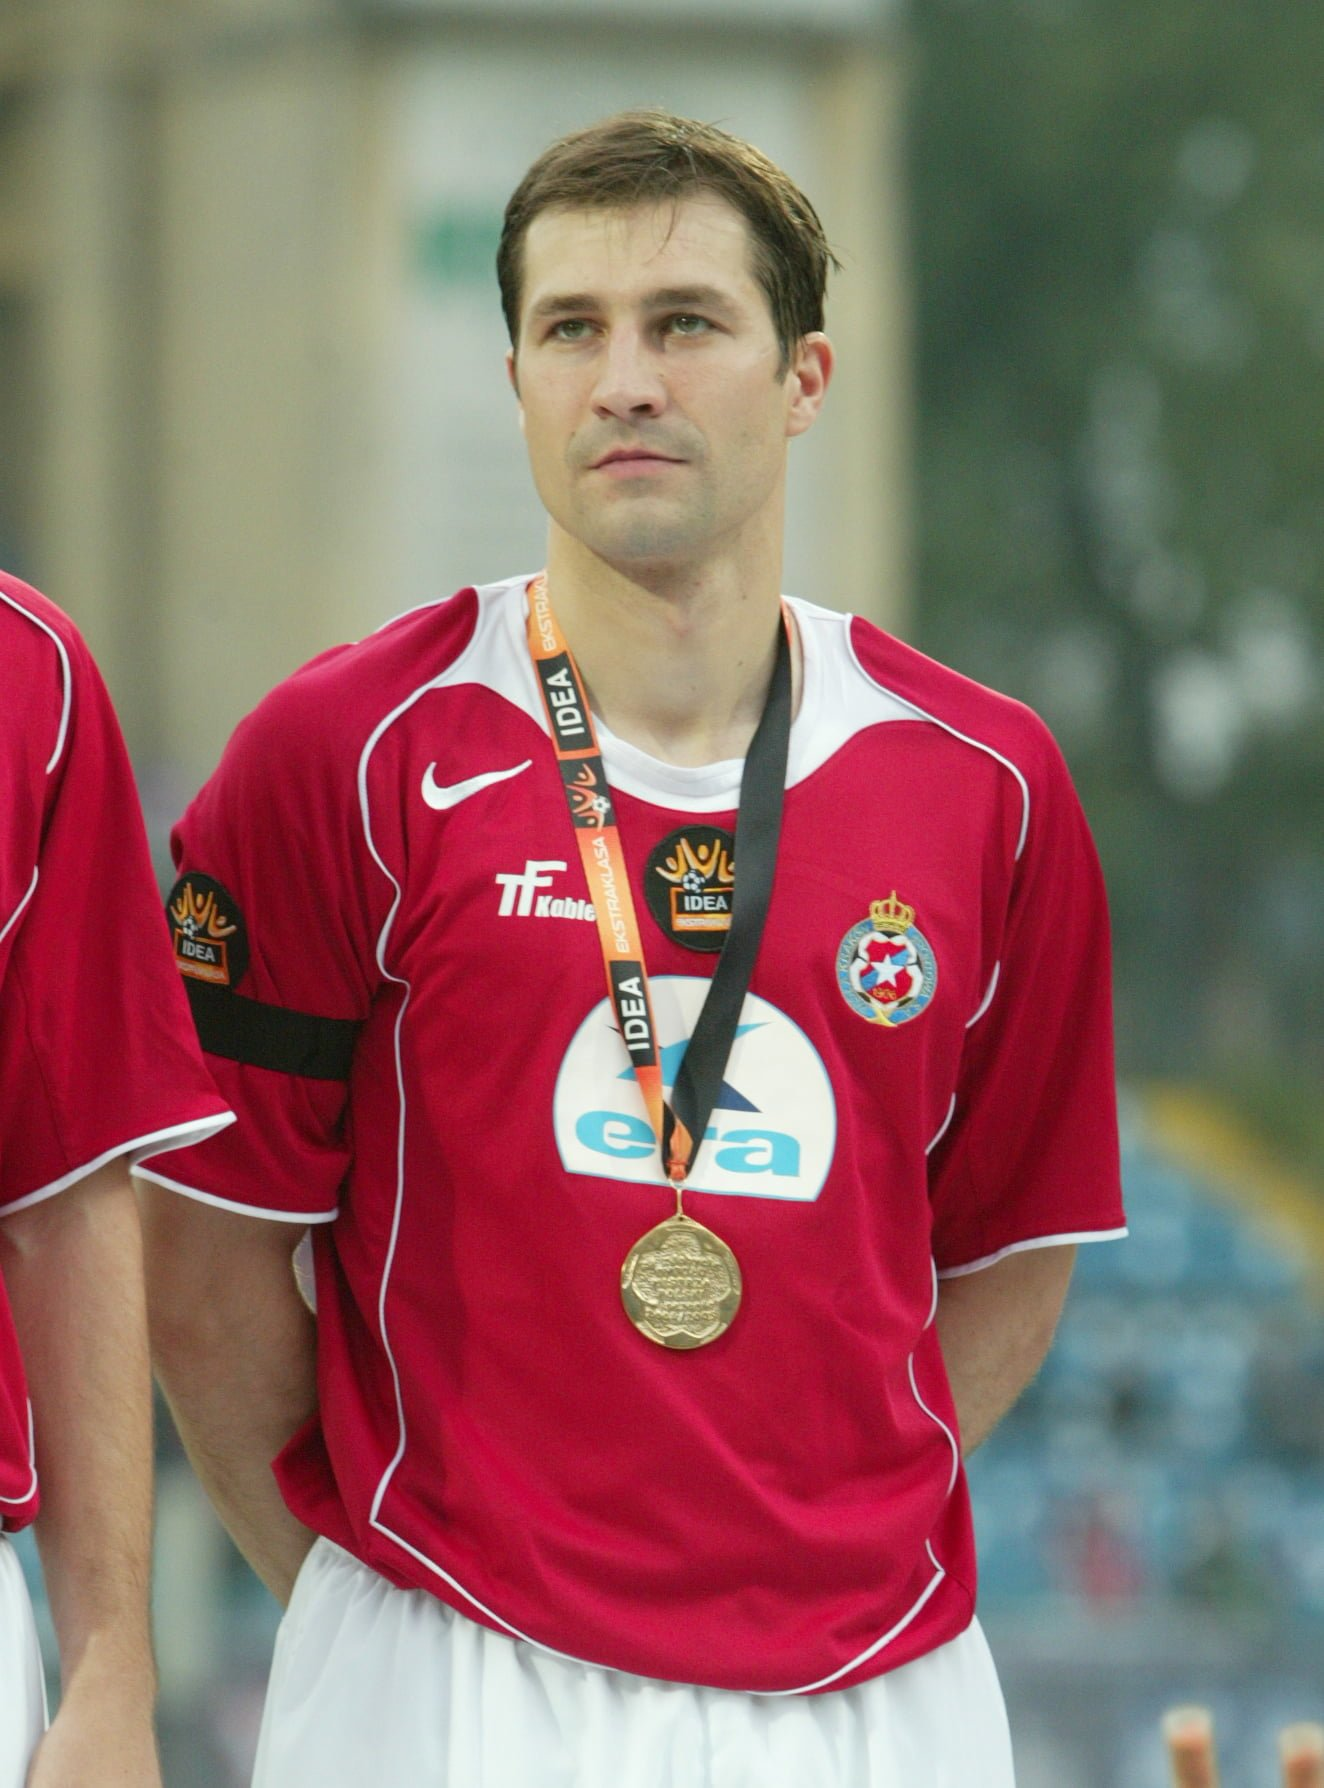 n/z. RADOSLAW SOBOLEWSKI MEDALE , MISTRZOSTWO WISLA KRAKOW - GROCLIN GRODZISK WLKP PILKA NOZNA, EKSTRAKLASA KRAKOW, 2005/06/12 FOTO: TOMASZ MARKOWSKI / PRZEGLAD SPORTOWY --- Newspix.pl *** Local Caption *** www.newspix.pl mail us: info@newspix.pl call us: 0048 022 23 22 222 --- Polish Picture Agency by Axel Springer Poland